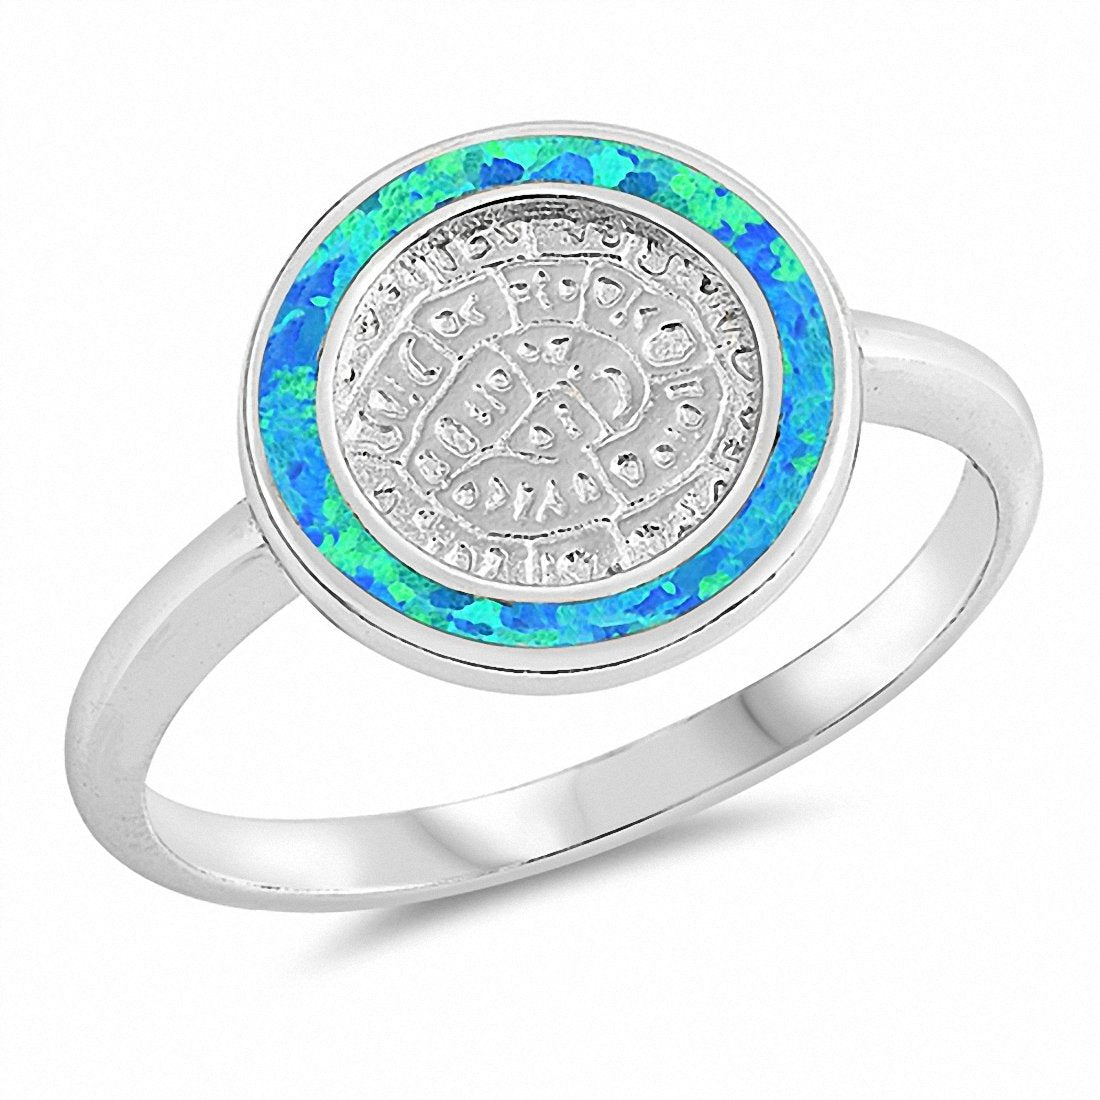 Ancient Writing Round Created Opal 925 Sterling Silver